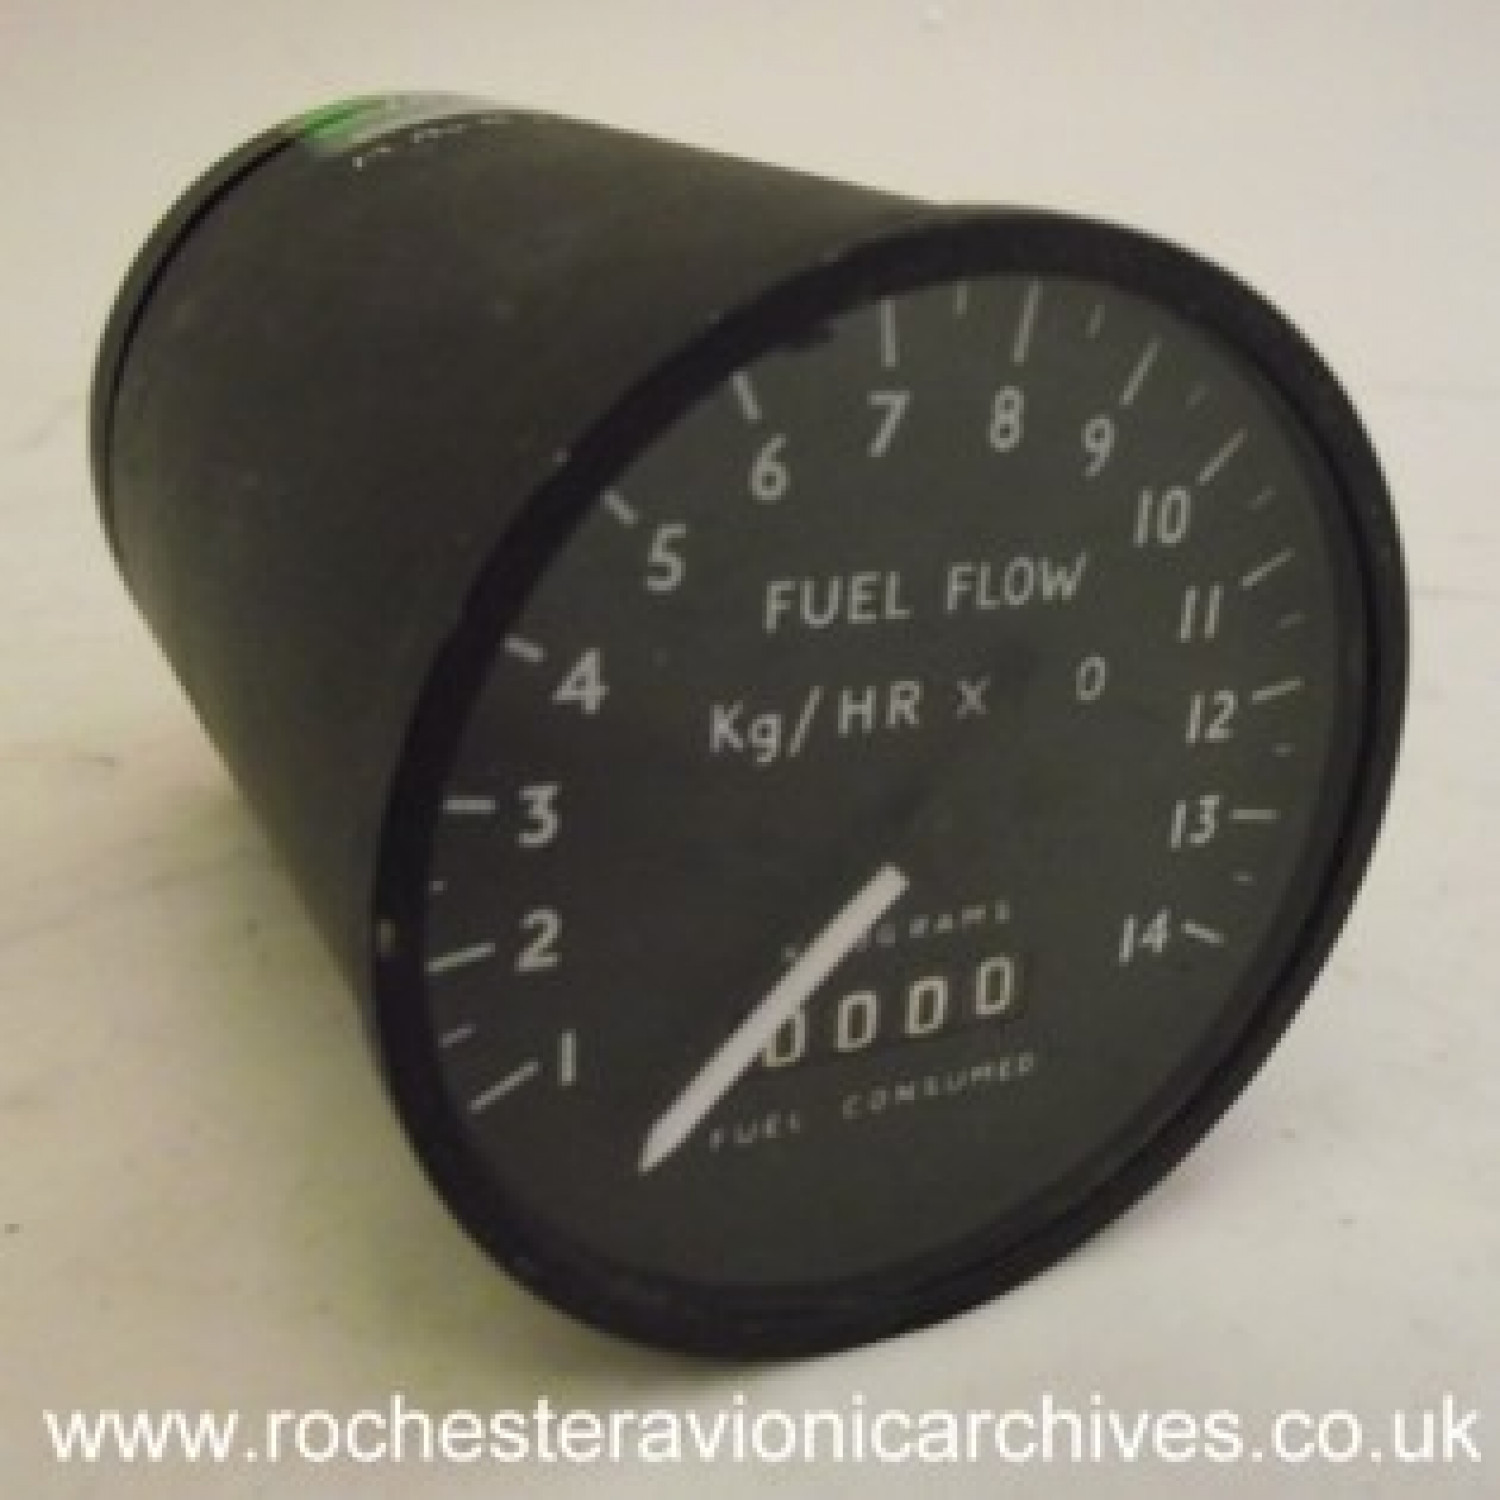 Trident Fuel Consumed & Flow Rate Indicator